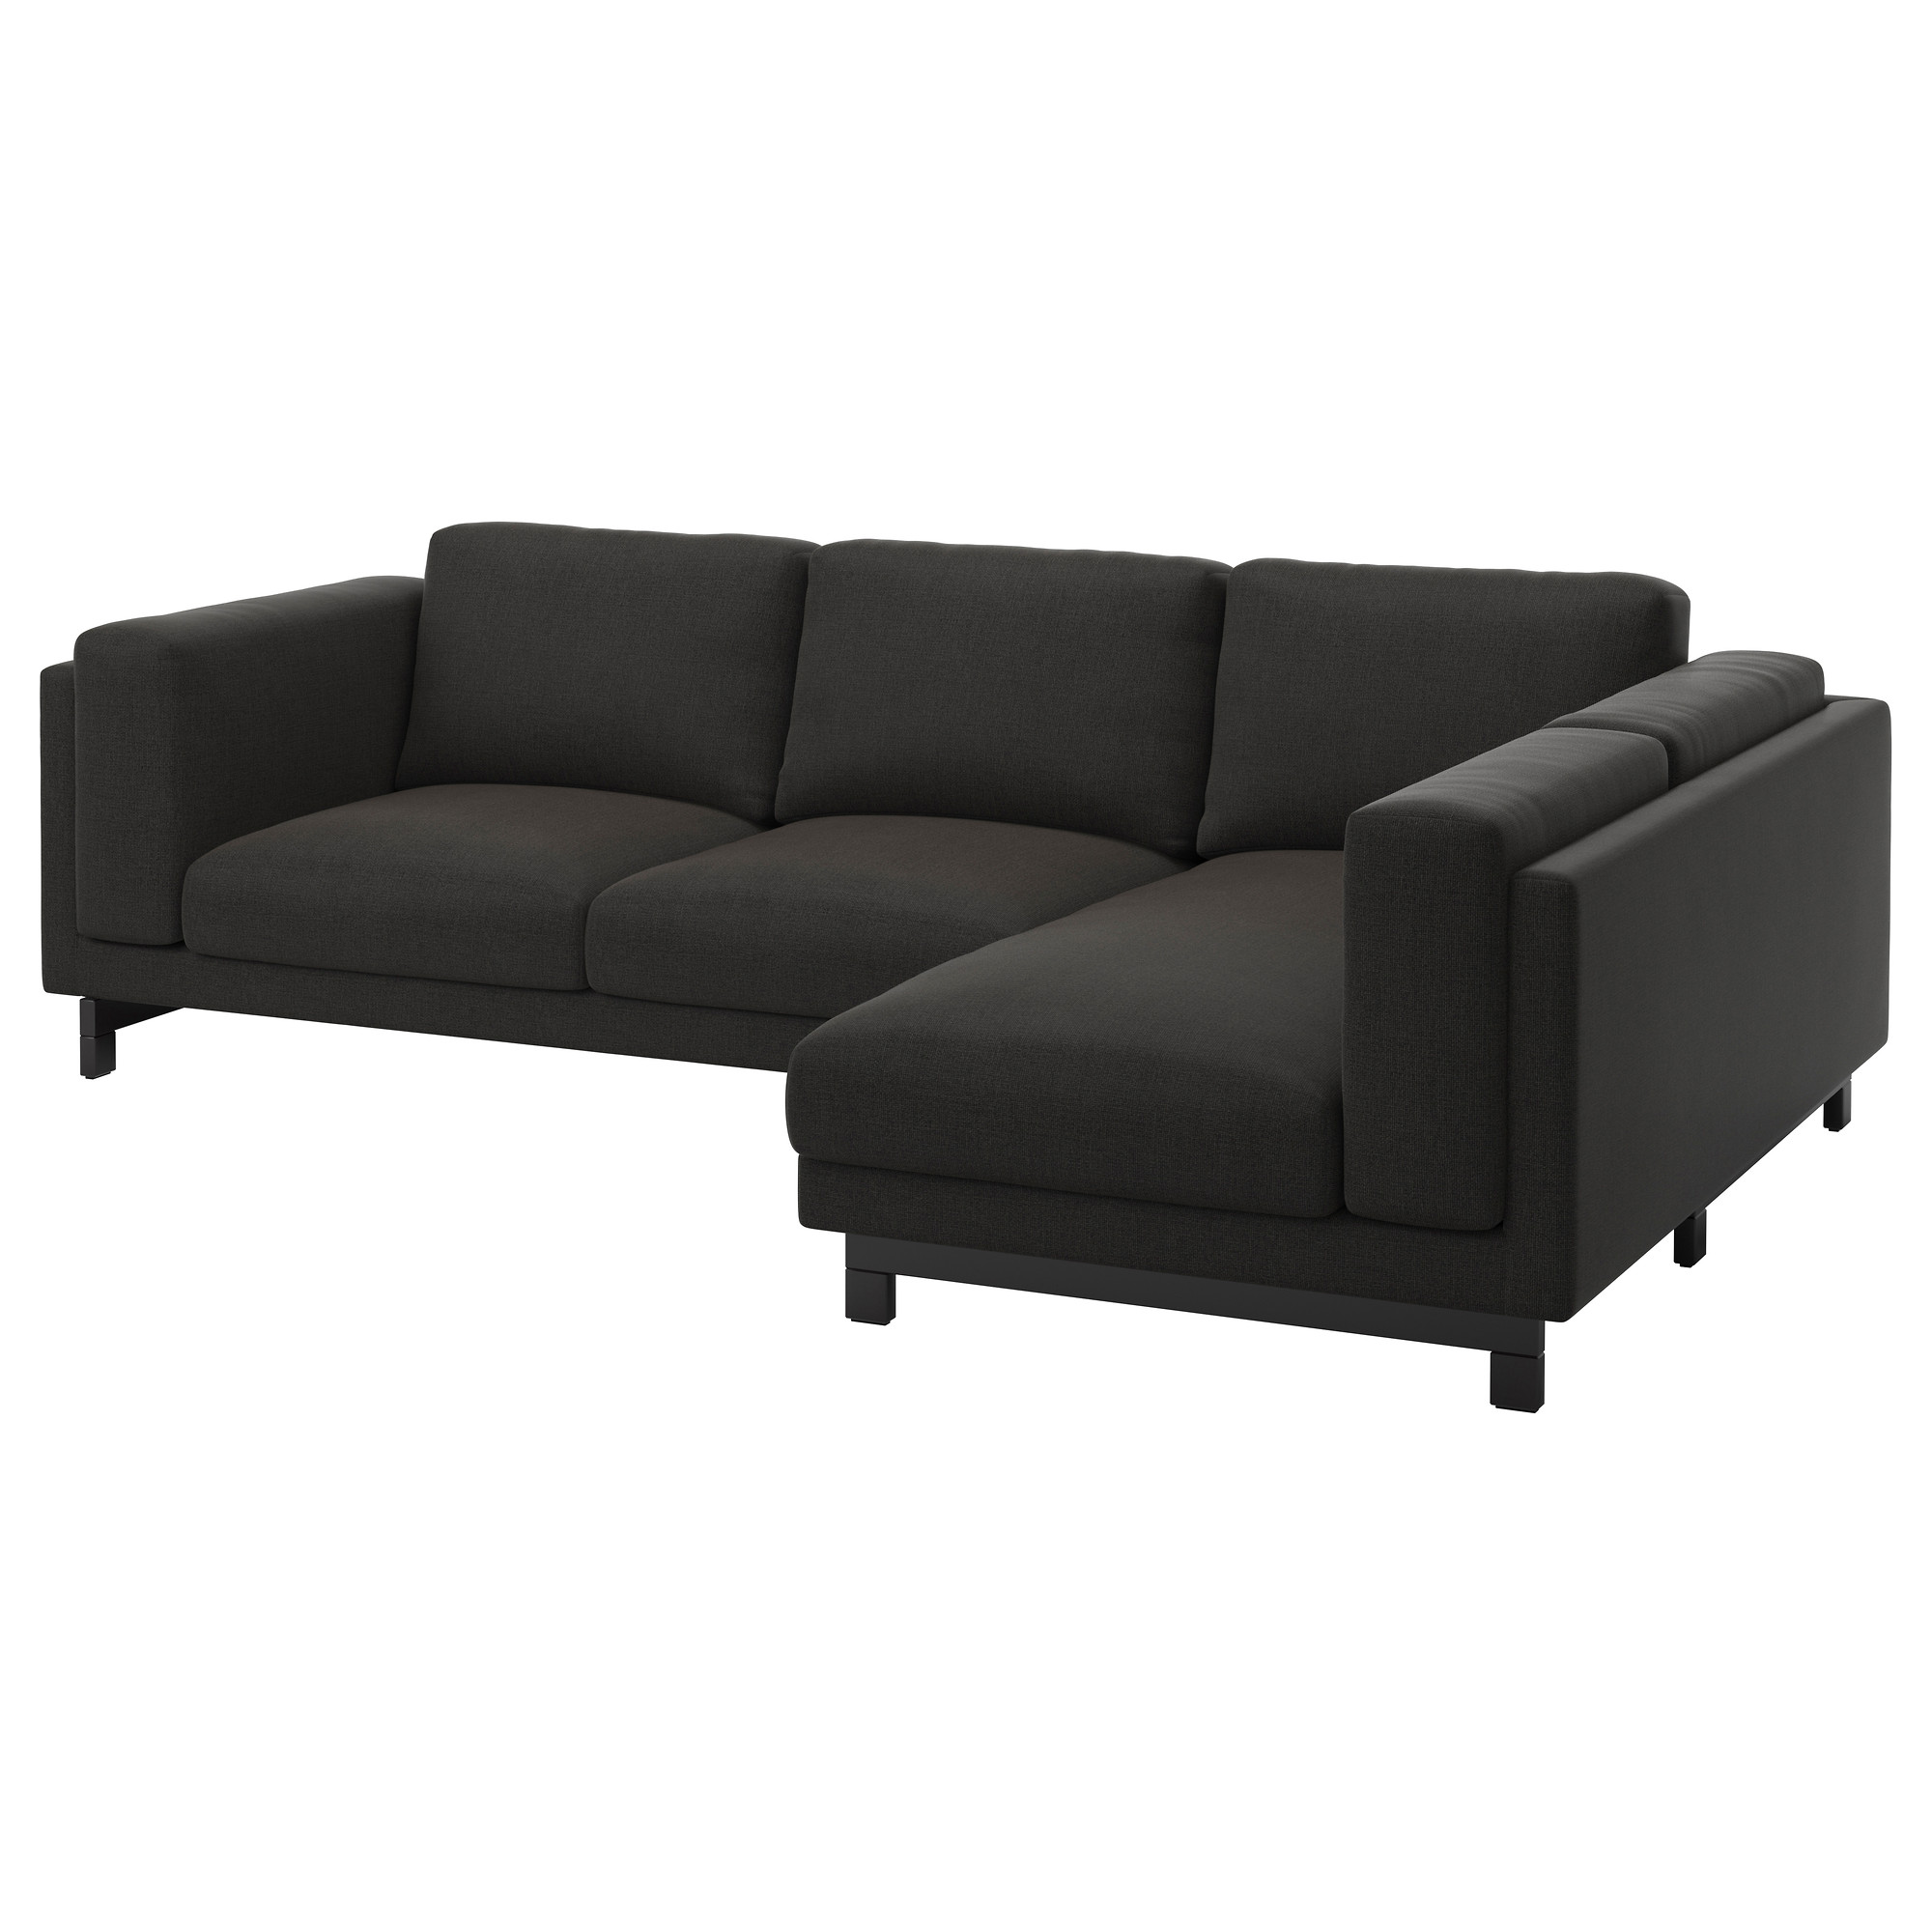 Sofa ikea  NOCKEBY Sofa - right/Tenö dark gray, with chaise/wood - IKEA